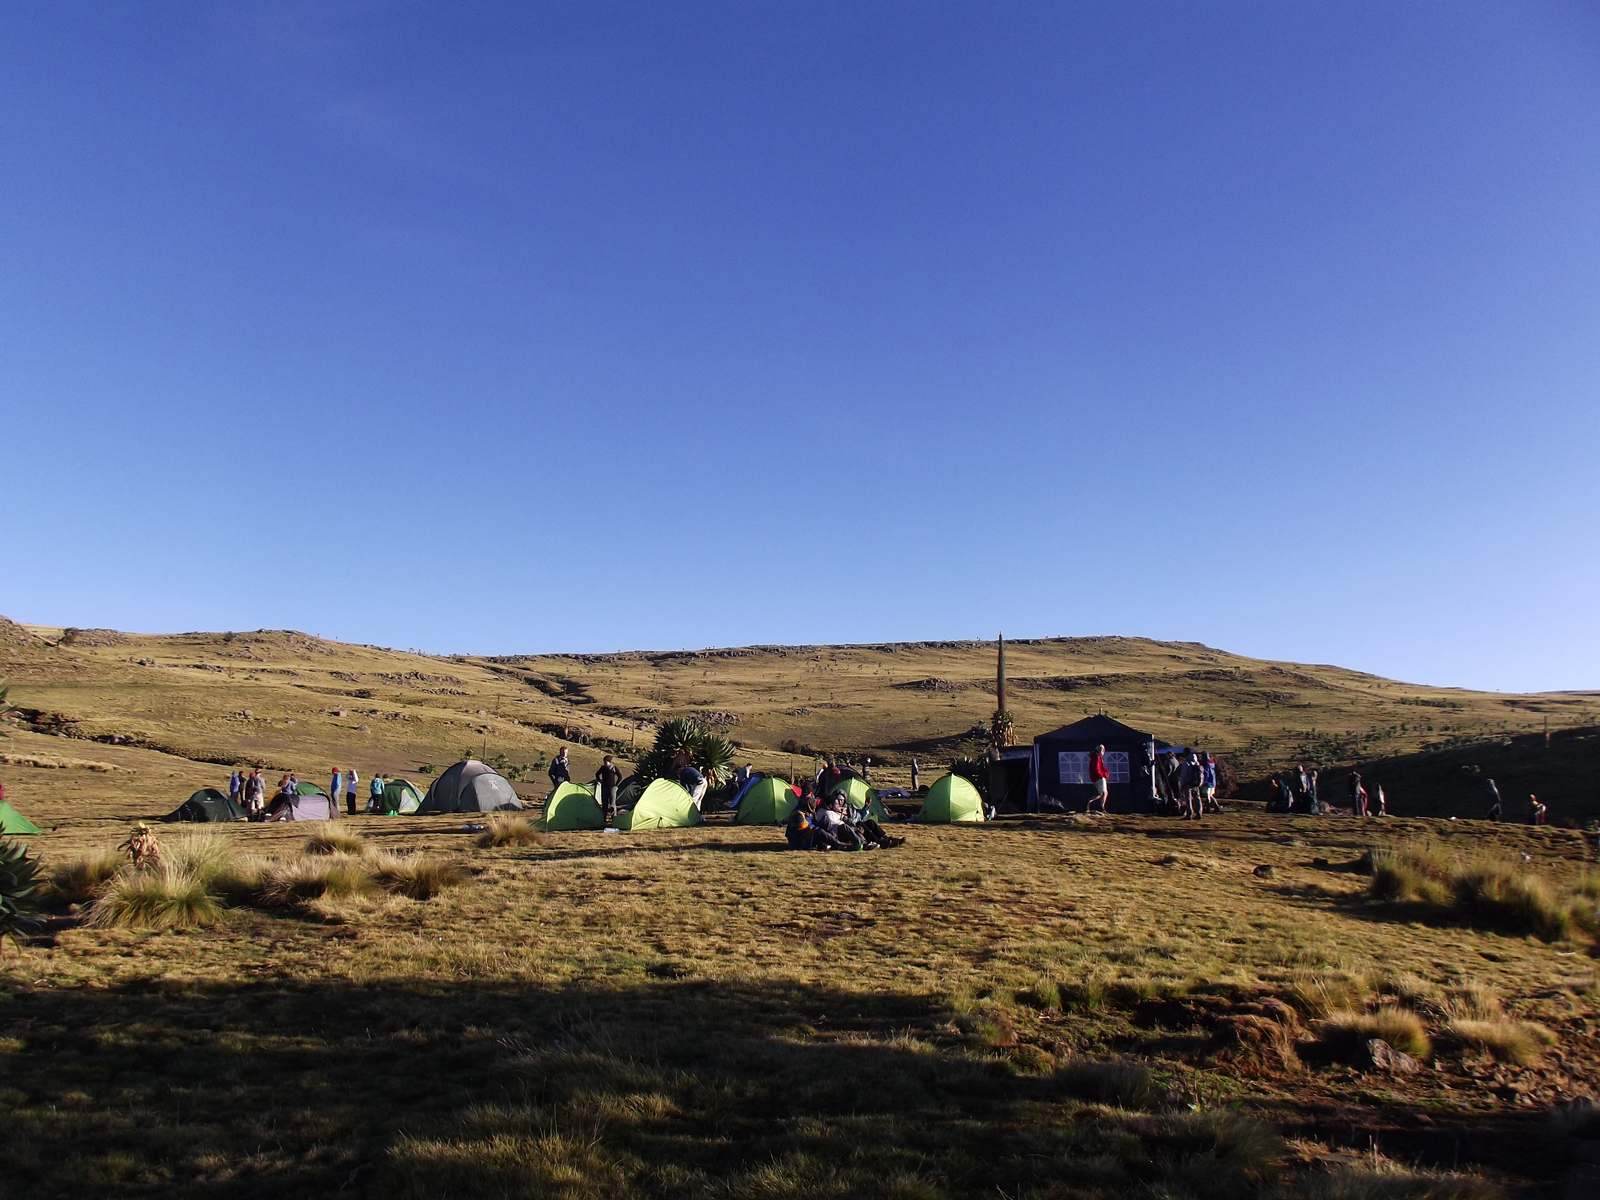 Gich campsite - where Sarah and her husband stayed on the second night of their Simien trek